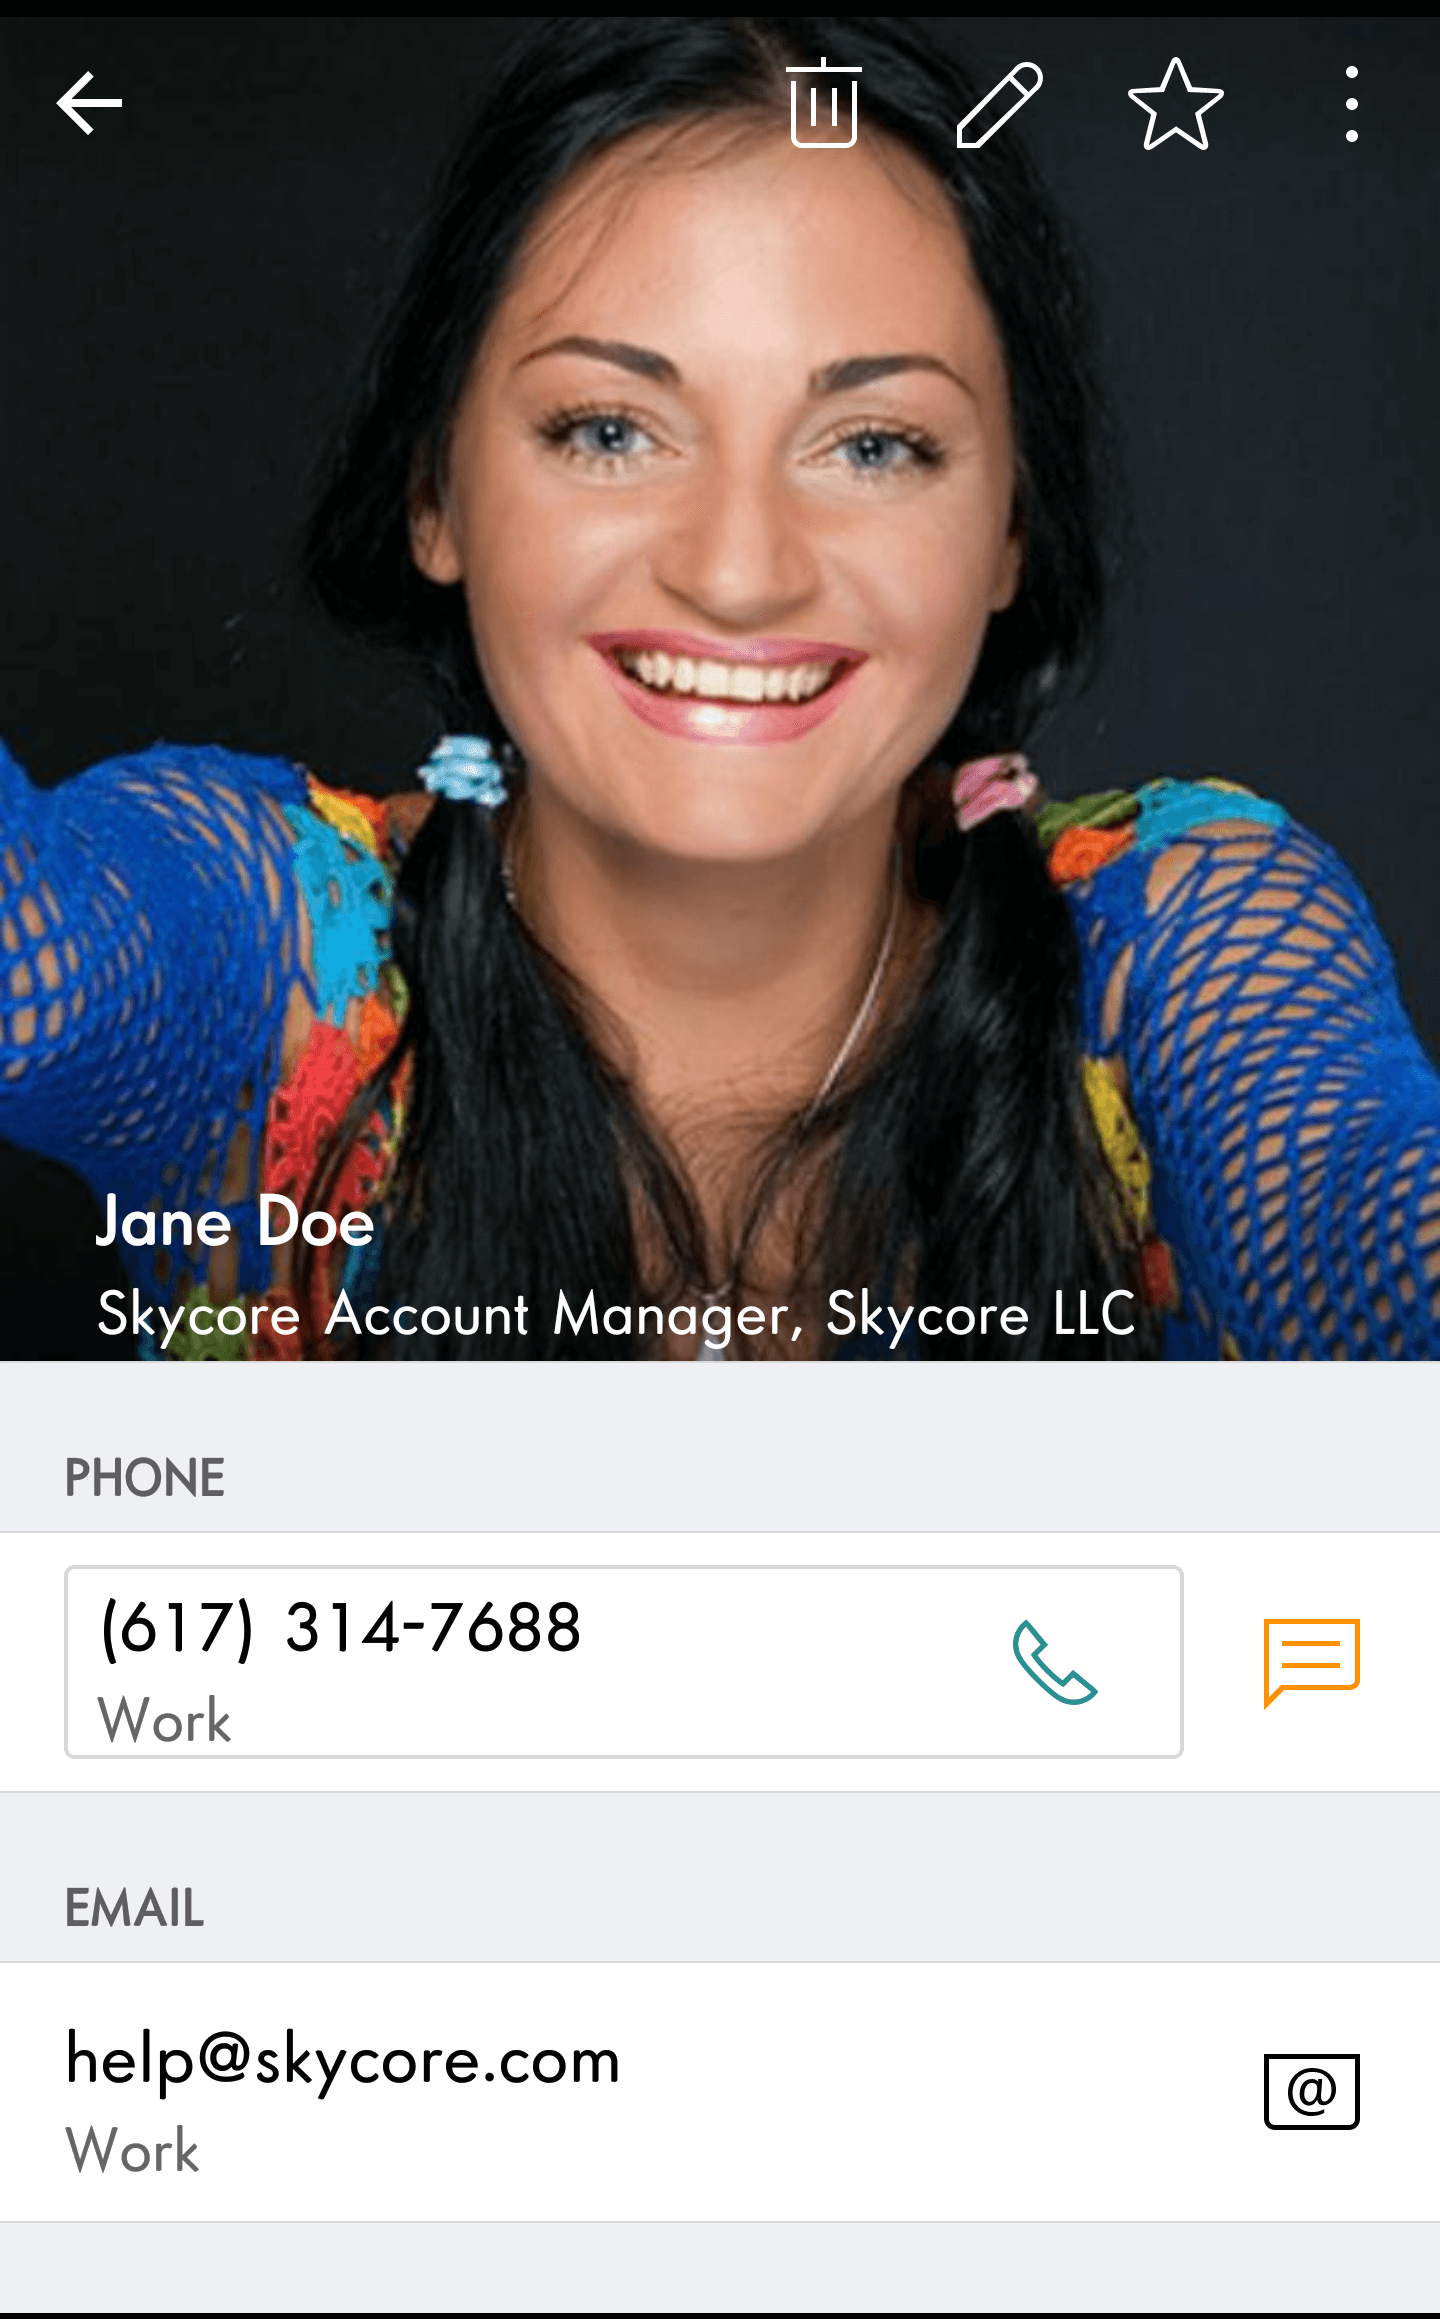 Digital business card viewed on Android